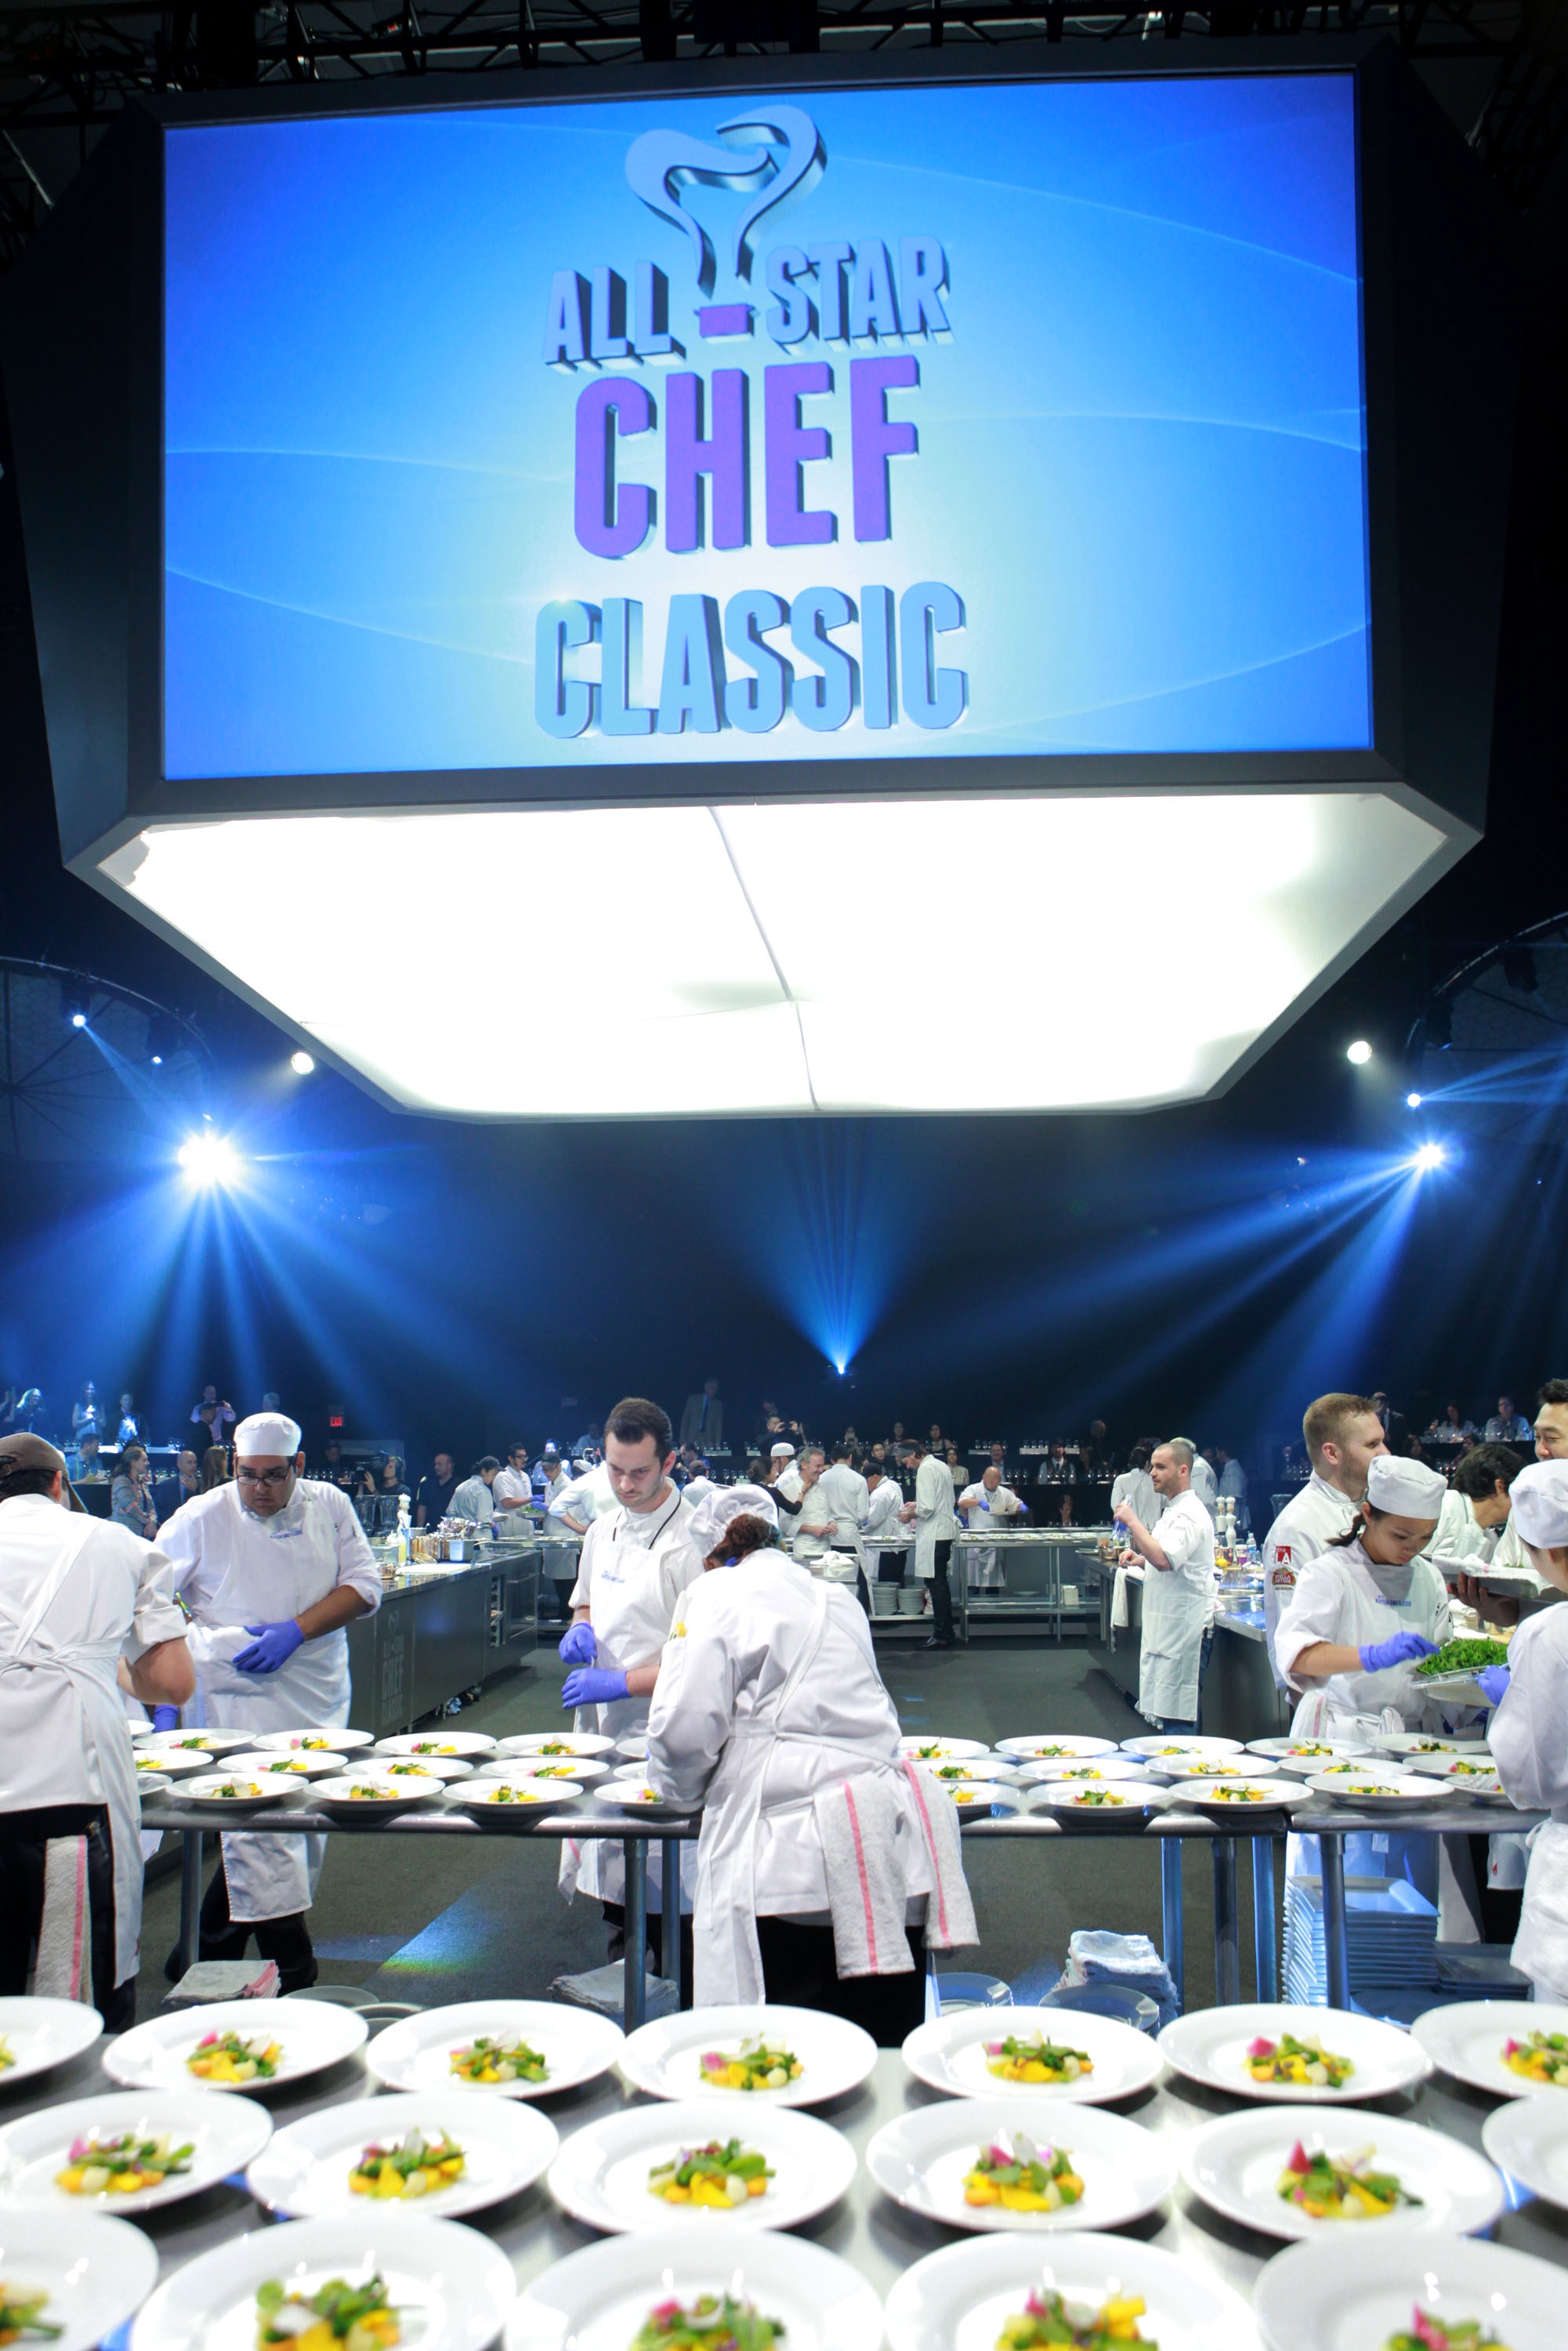 All-Star Chef Classic - French Masters Dinner Presented By Fisher And Paykel